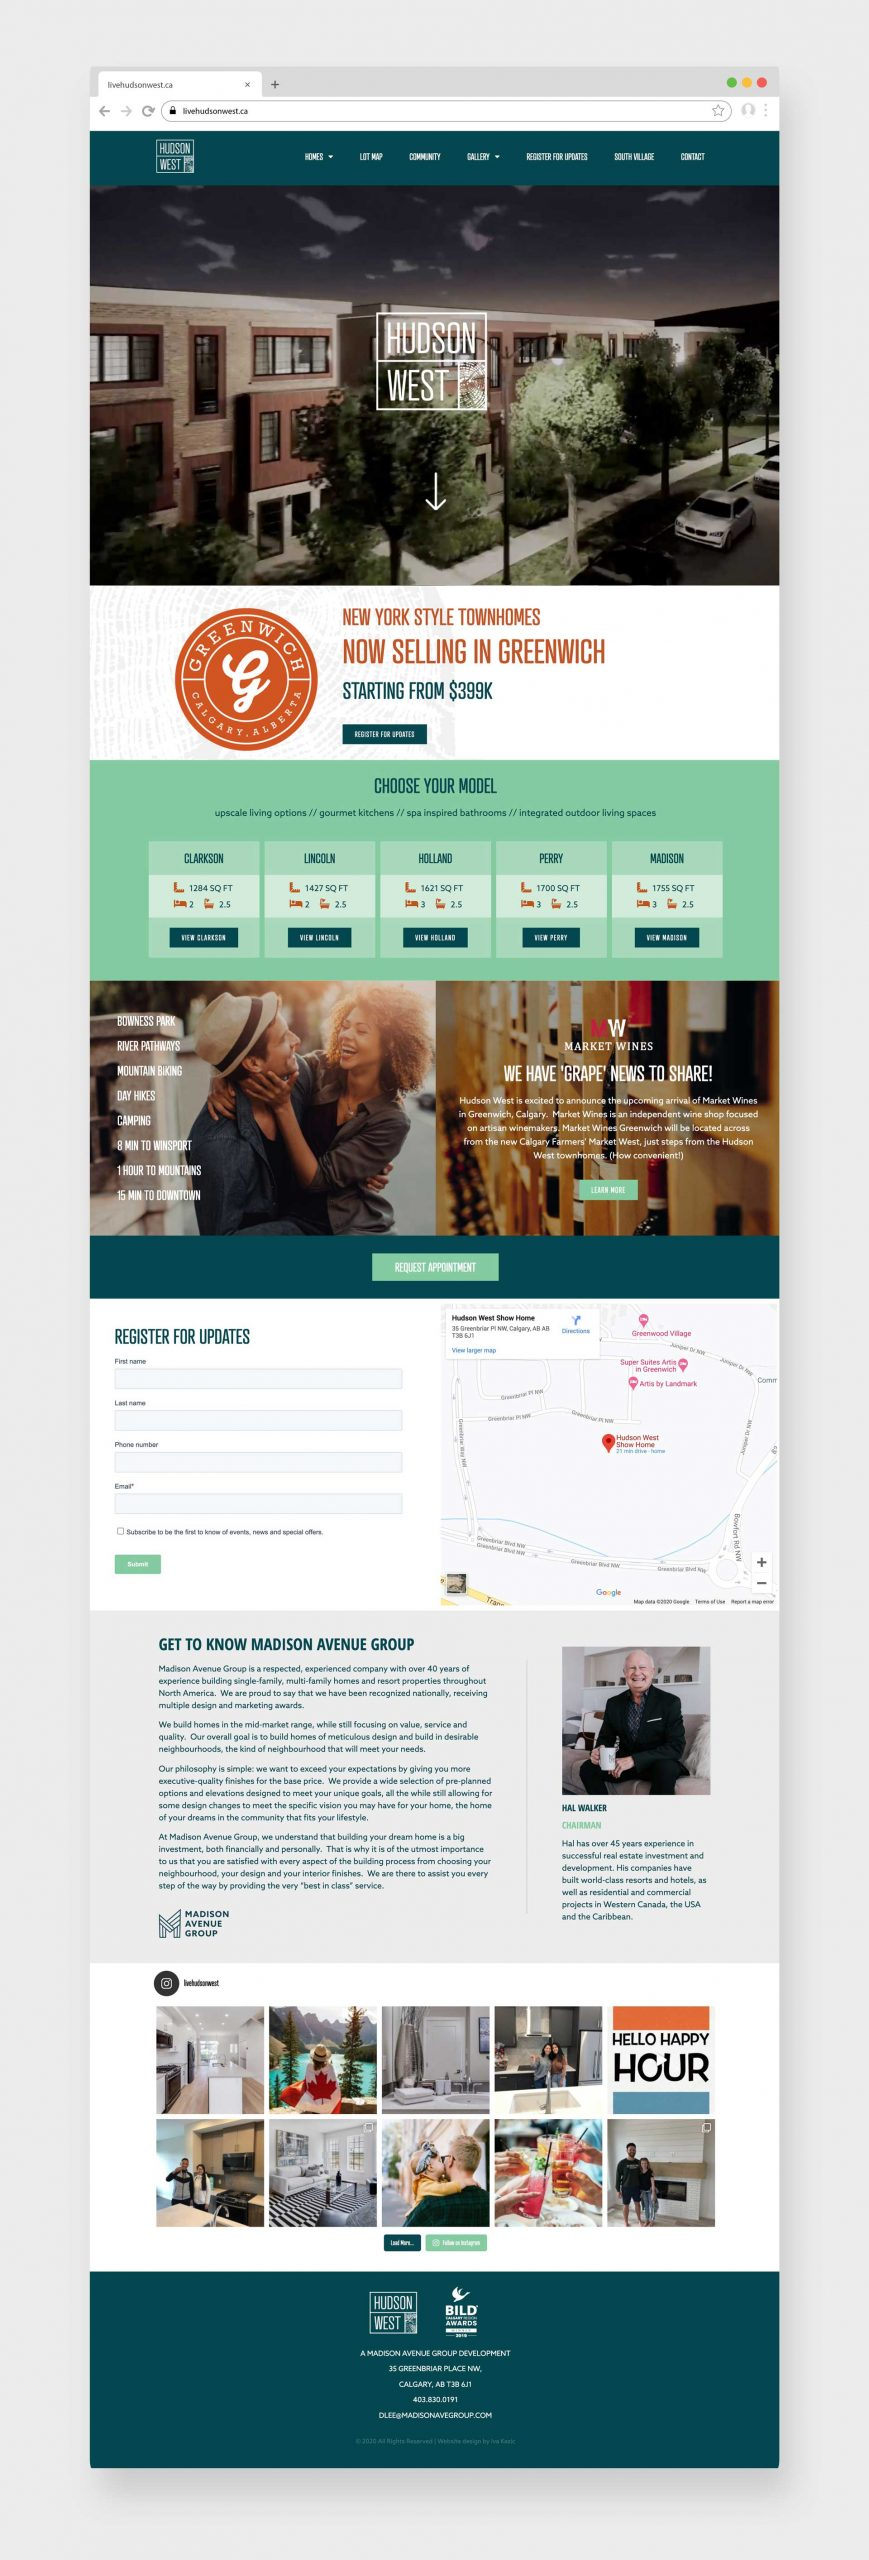 Hudson West Calgary, Website Design, BILD 2019 Award Winner